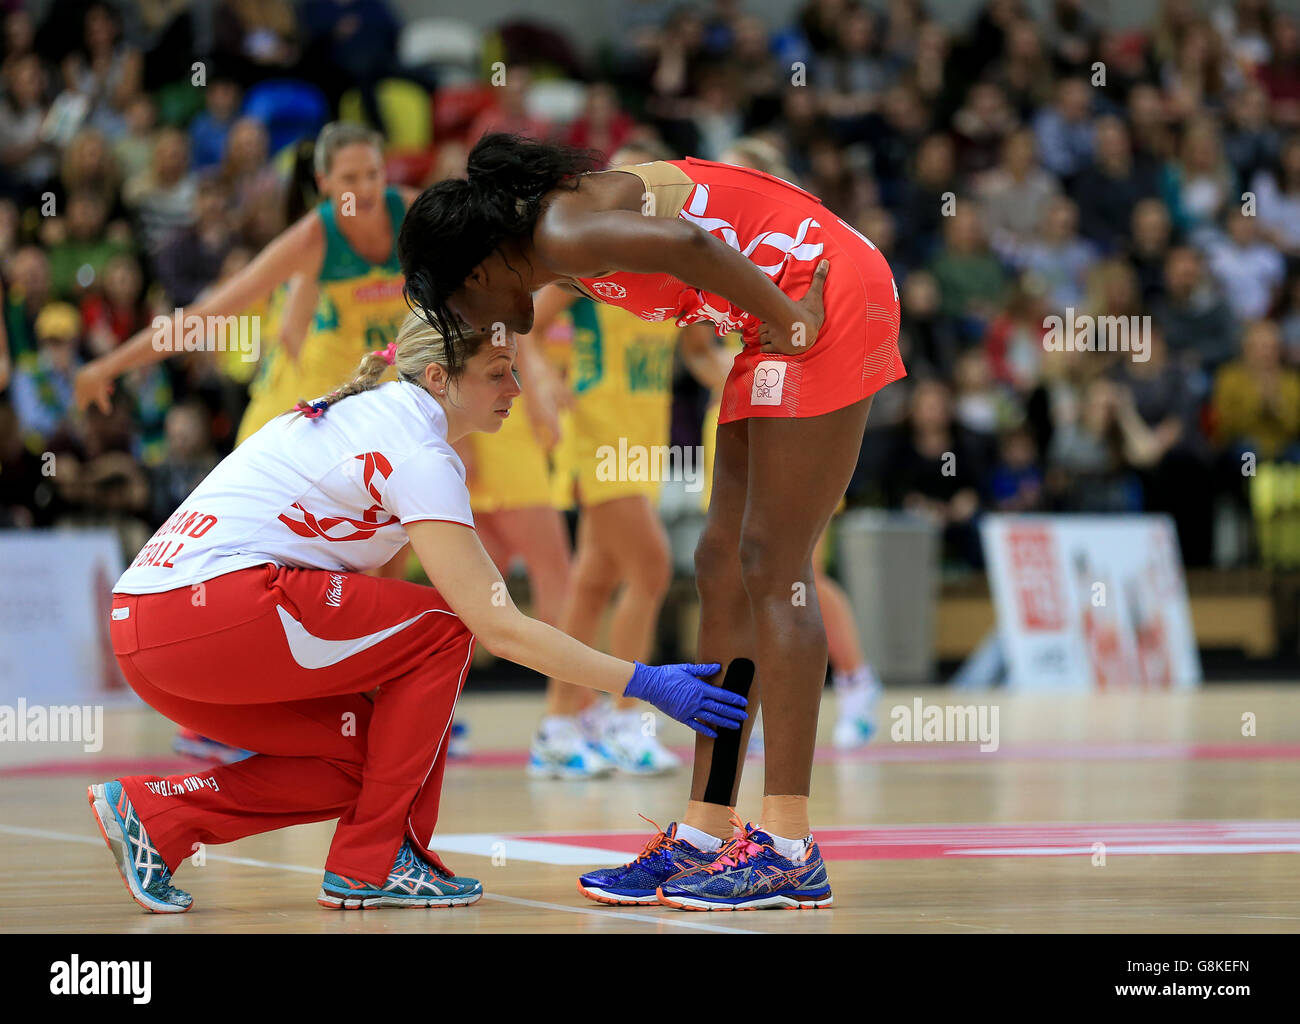 Inghilterra v Australia - International Netball Series - terza partita - Scatola di rame Foto Stock